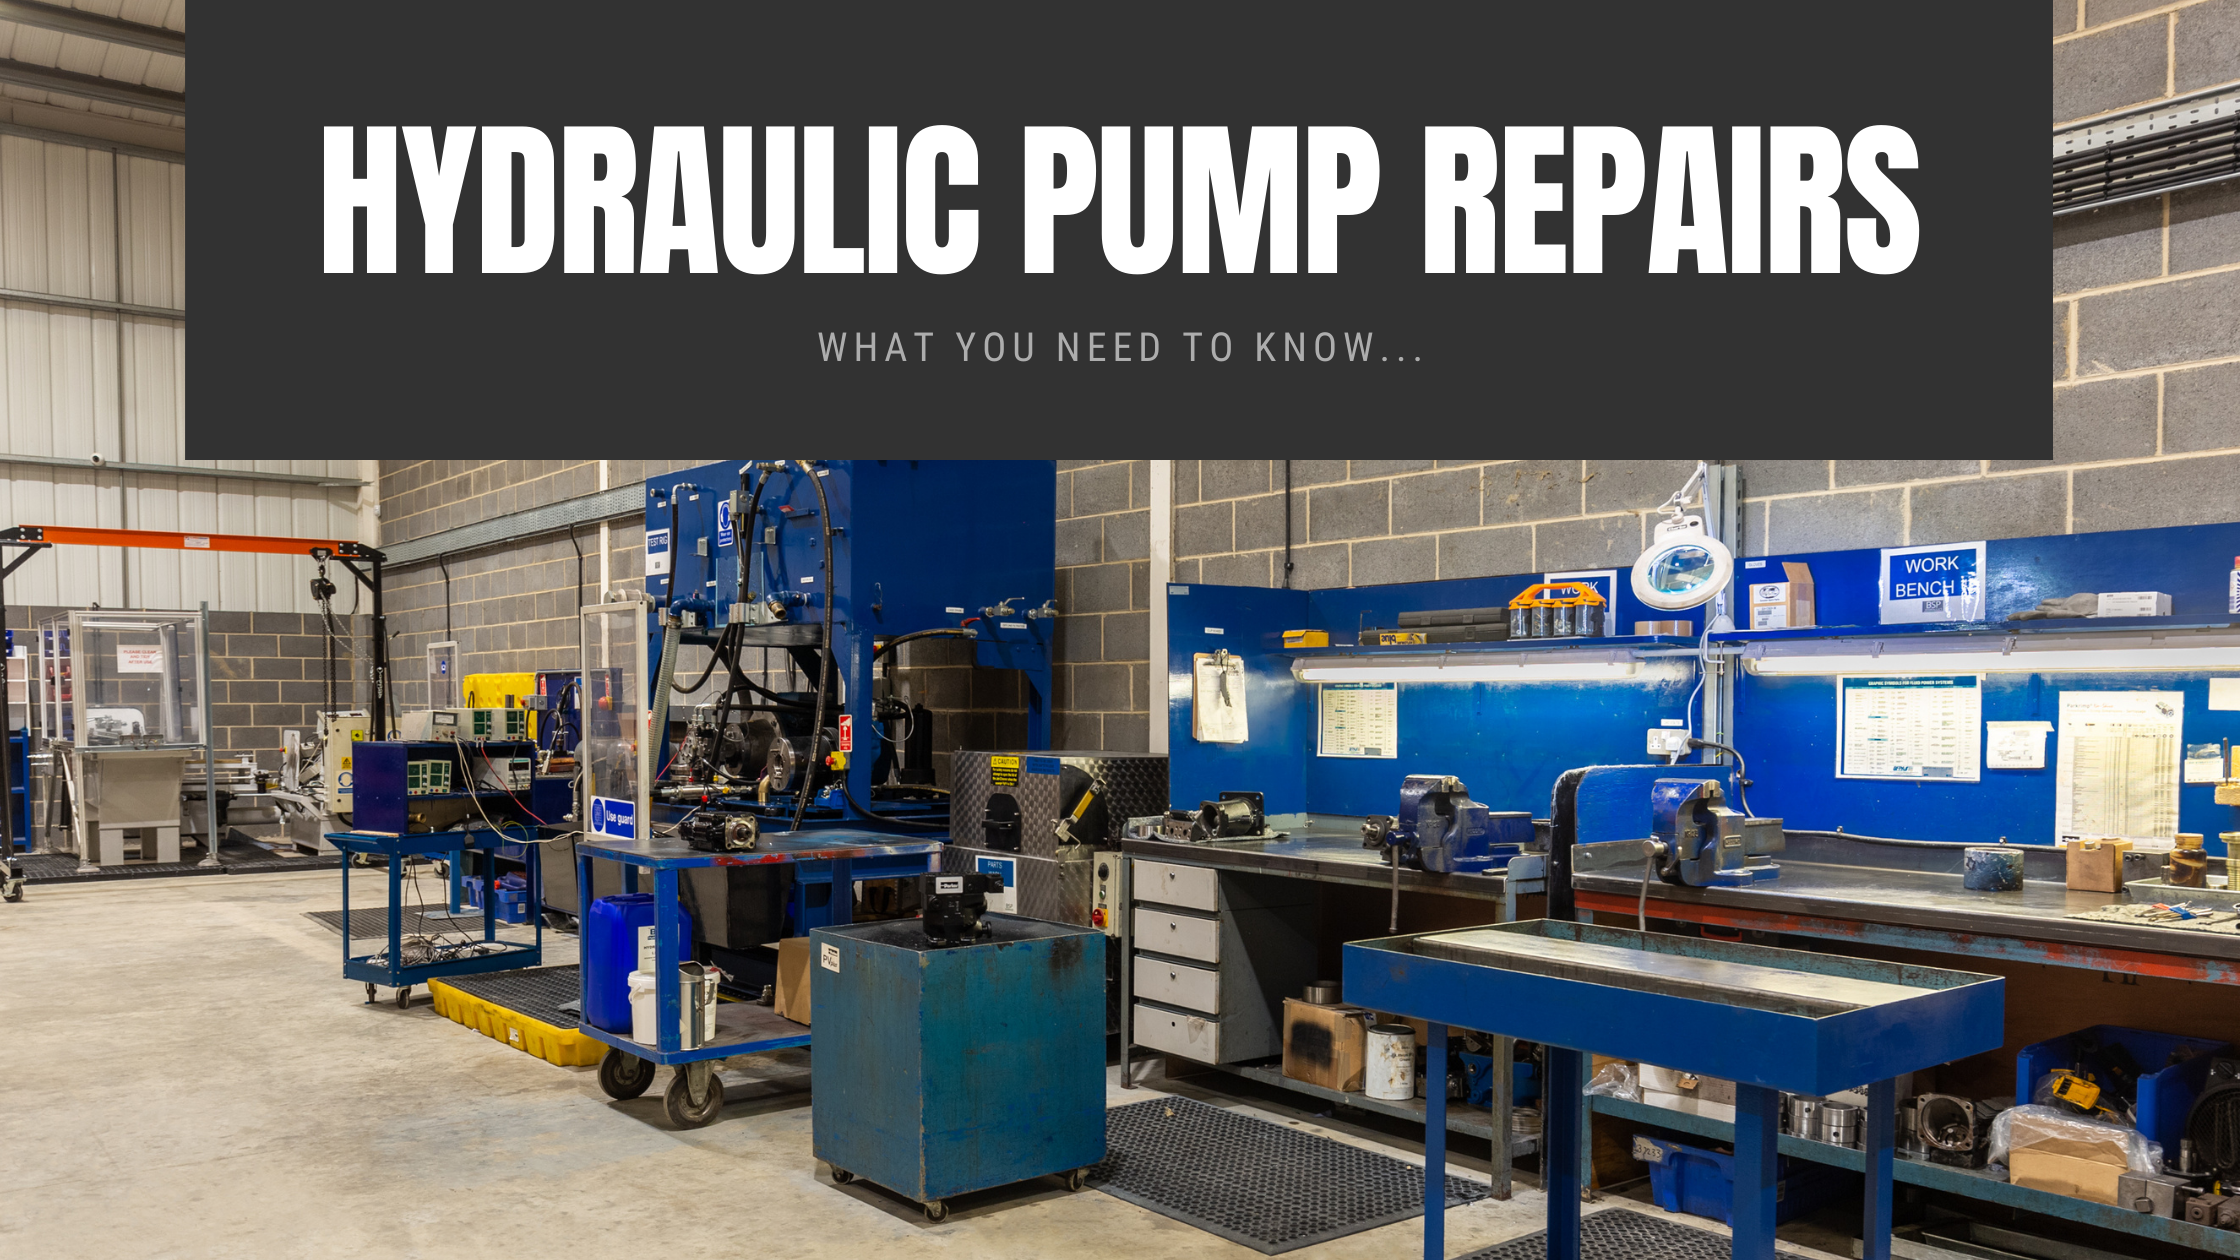 Hydraulic Pump Repairs Yorkshire